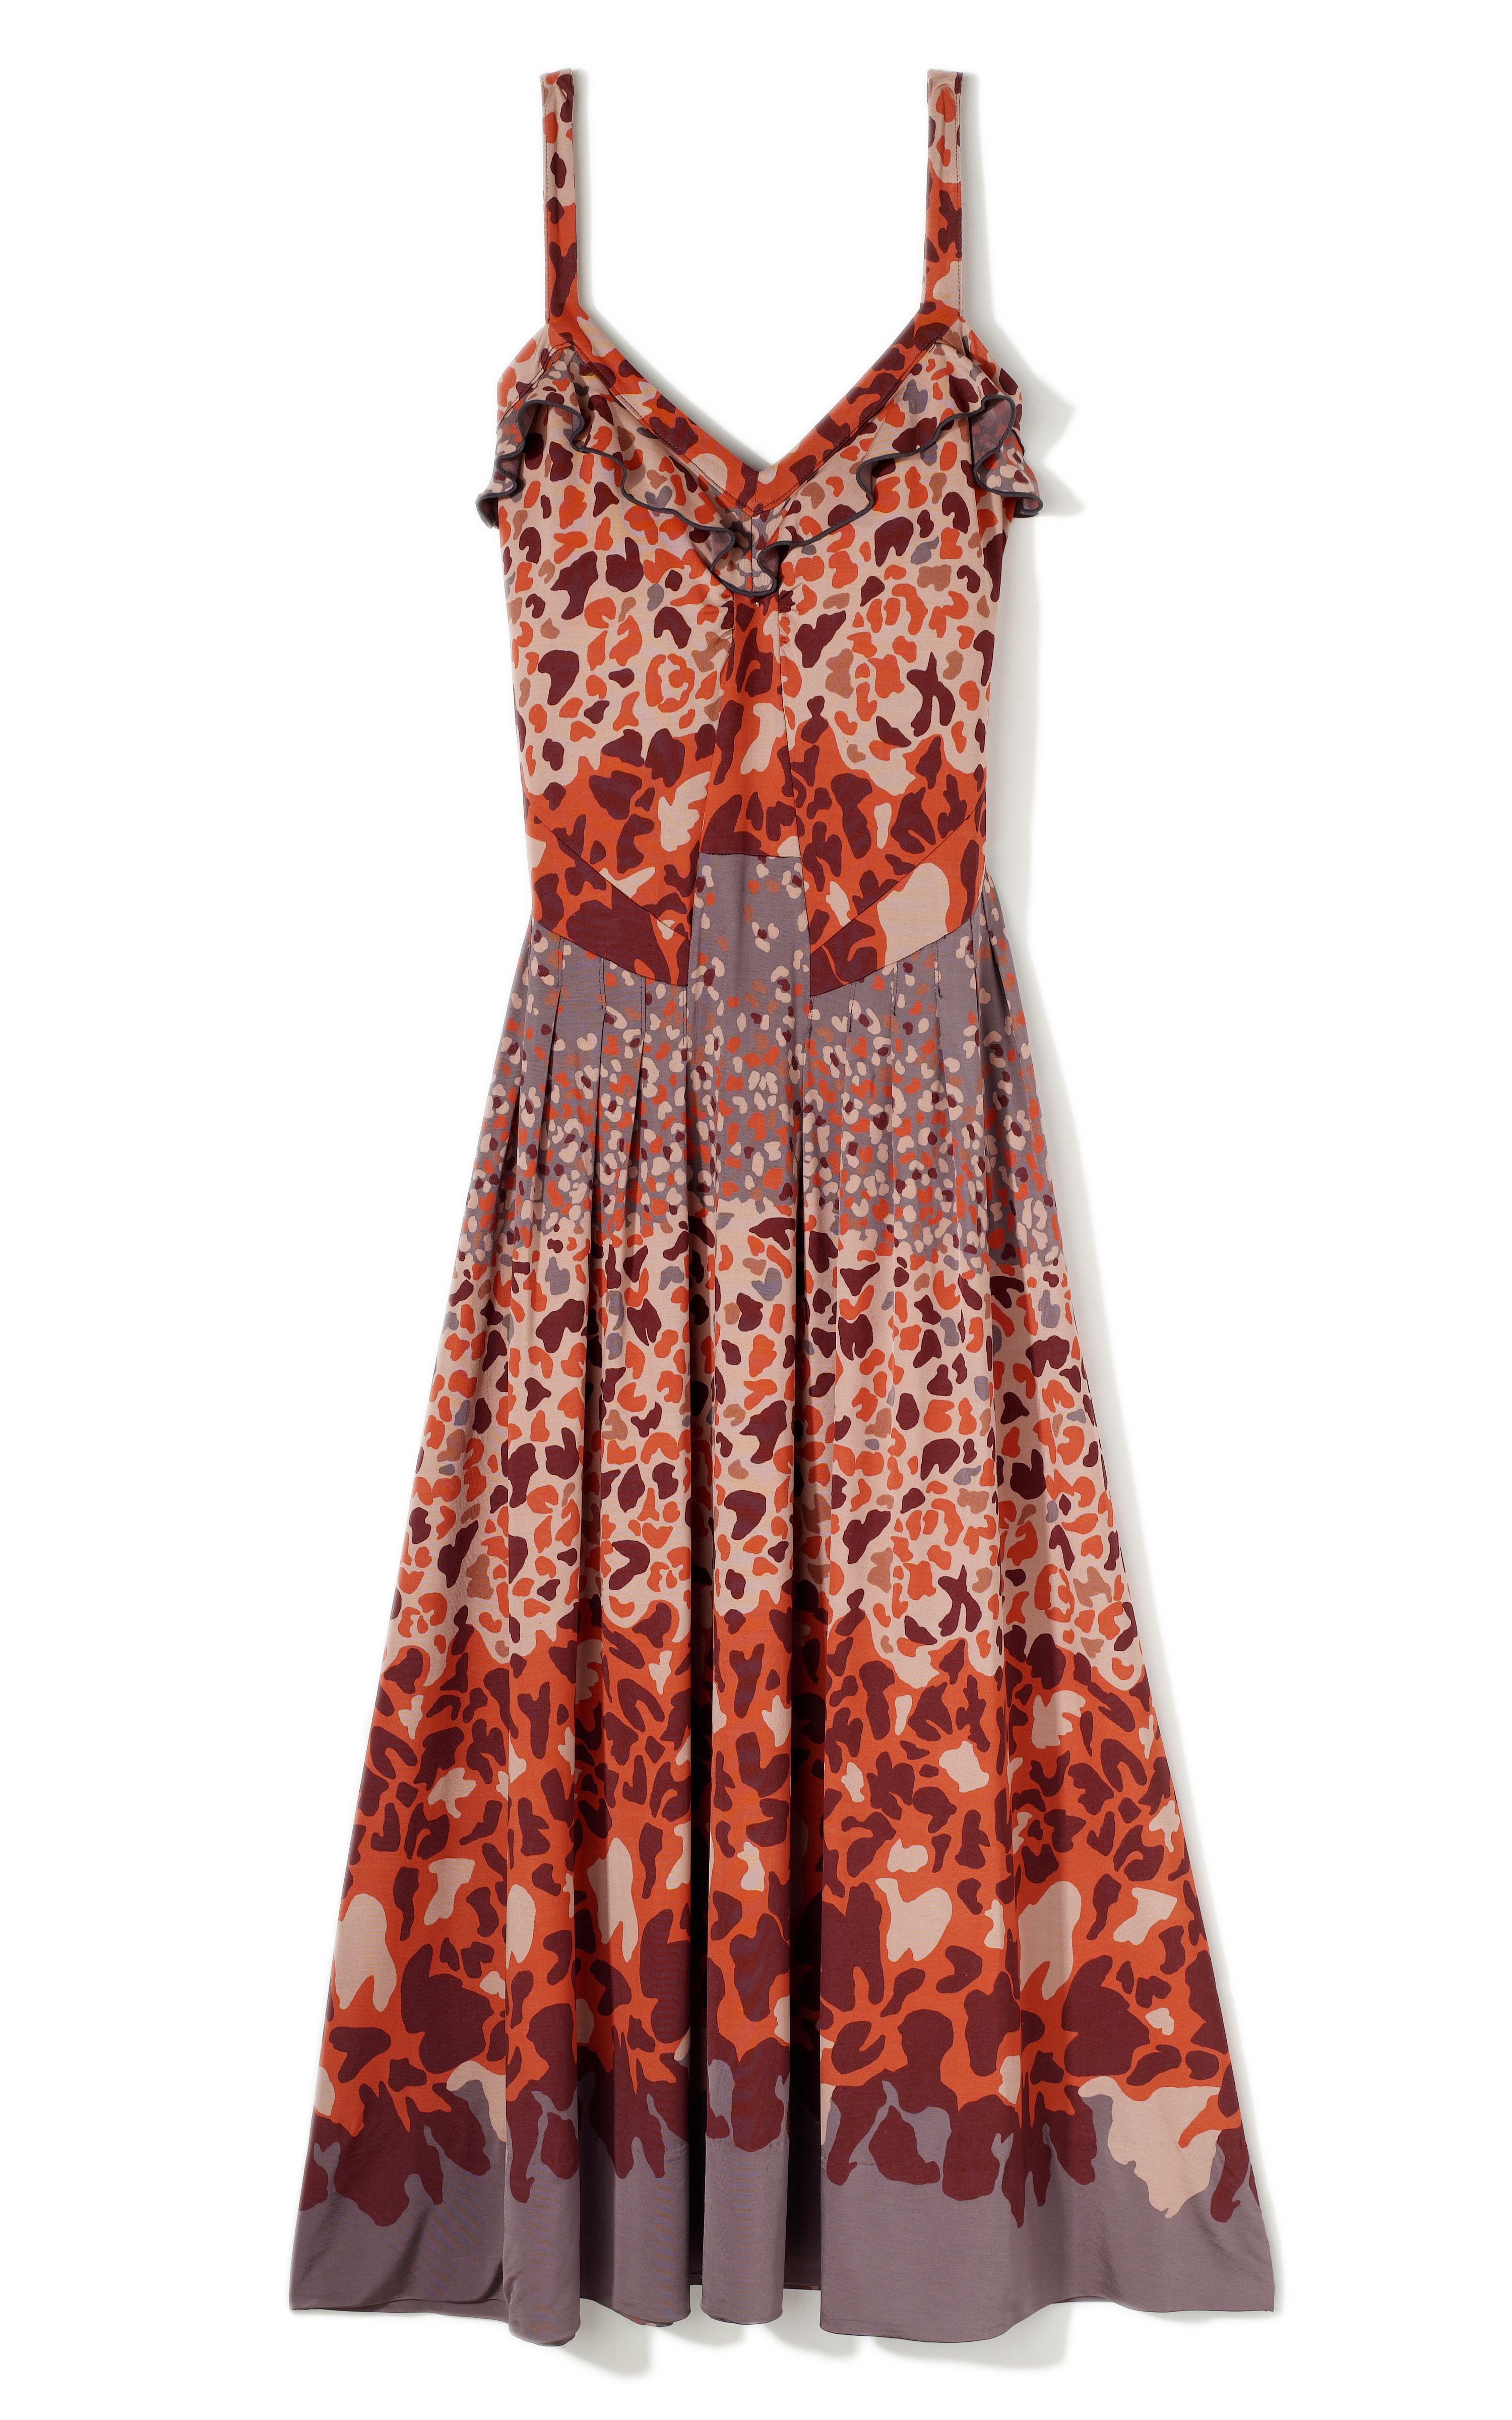 Camo and orange wedding dresses  Marc by Marc Jacobs Garden party dress  Gardening and Landscape